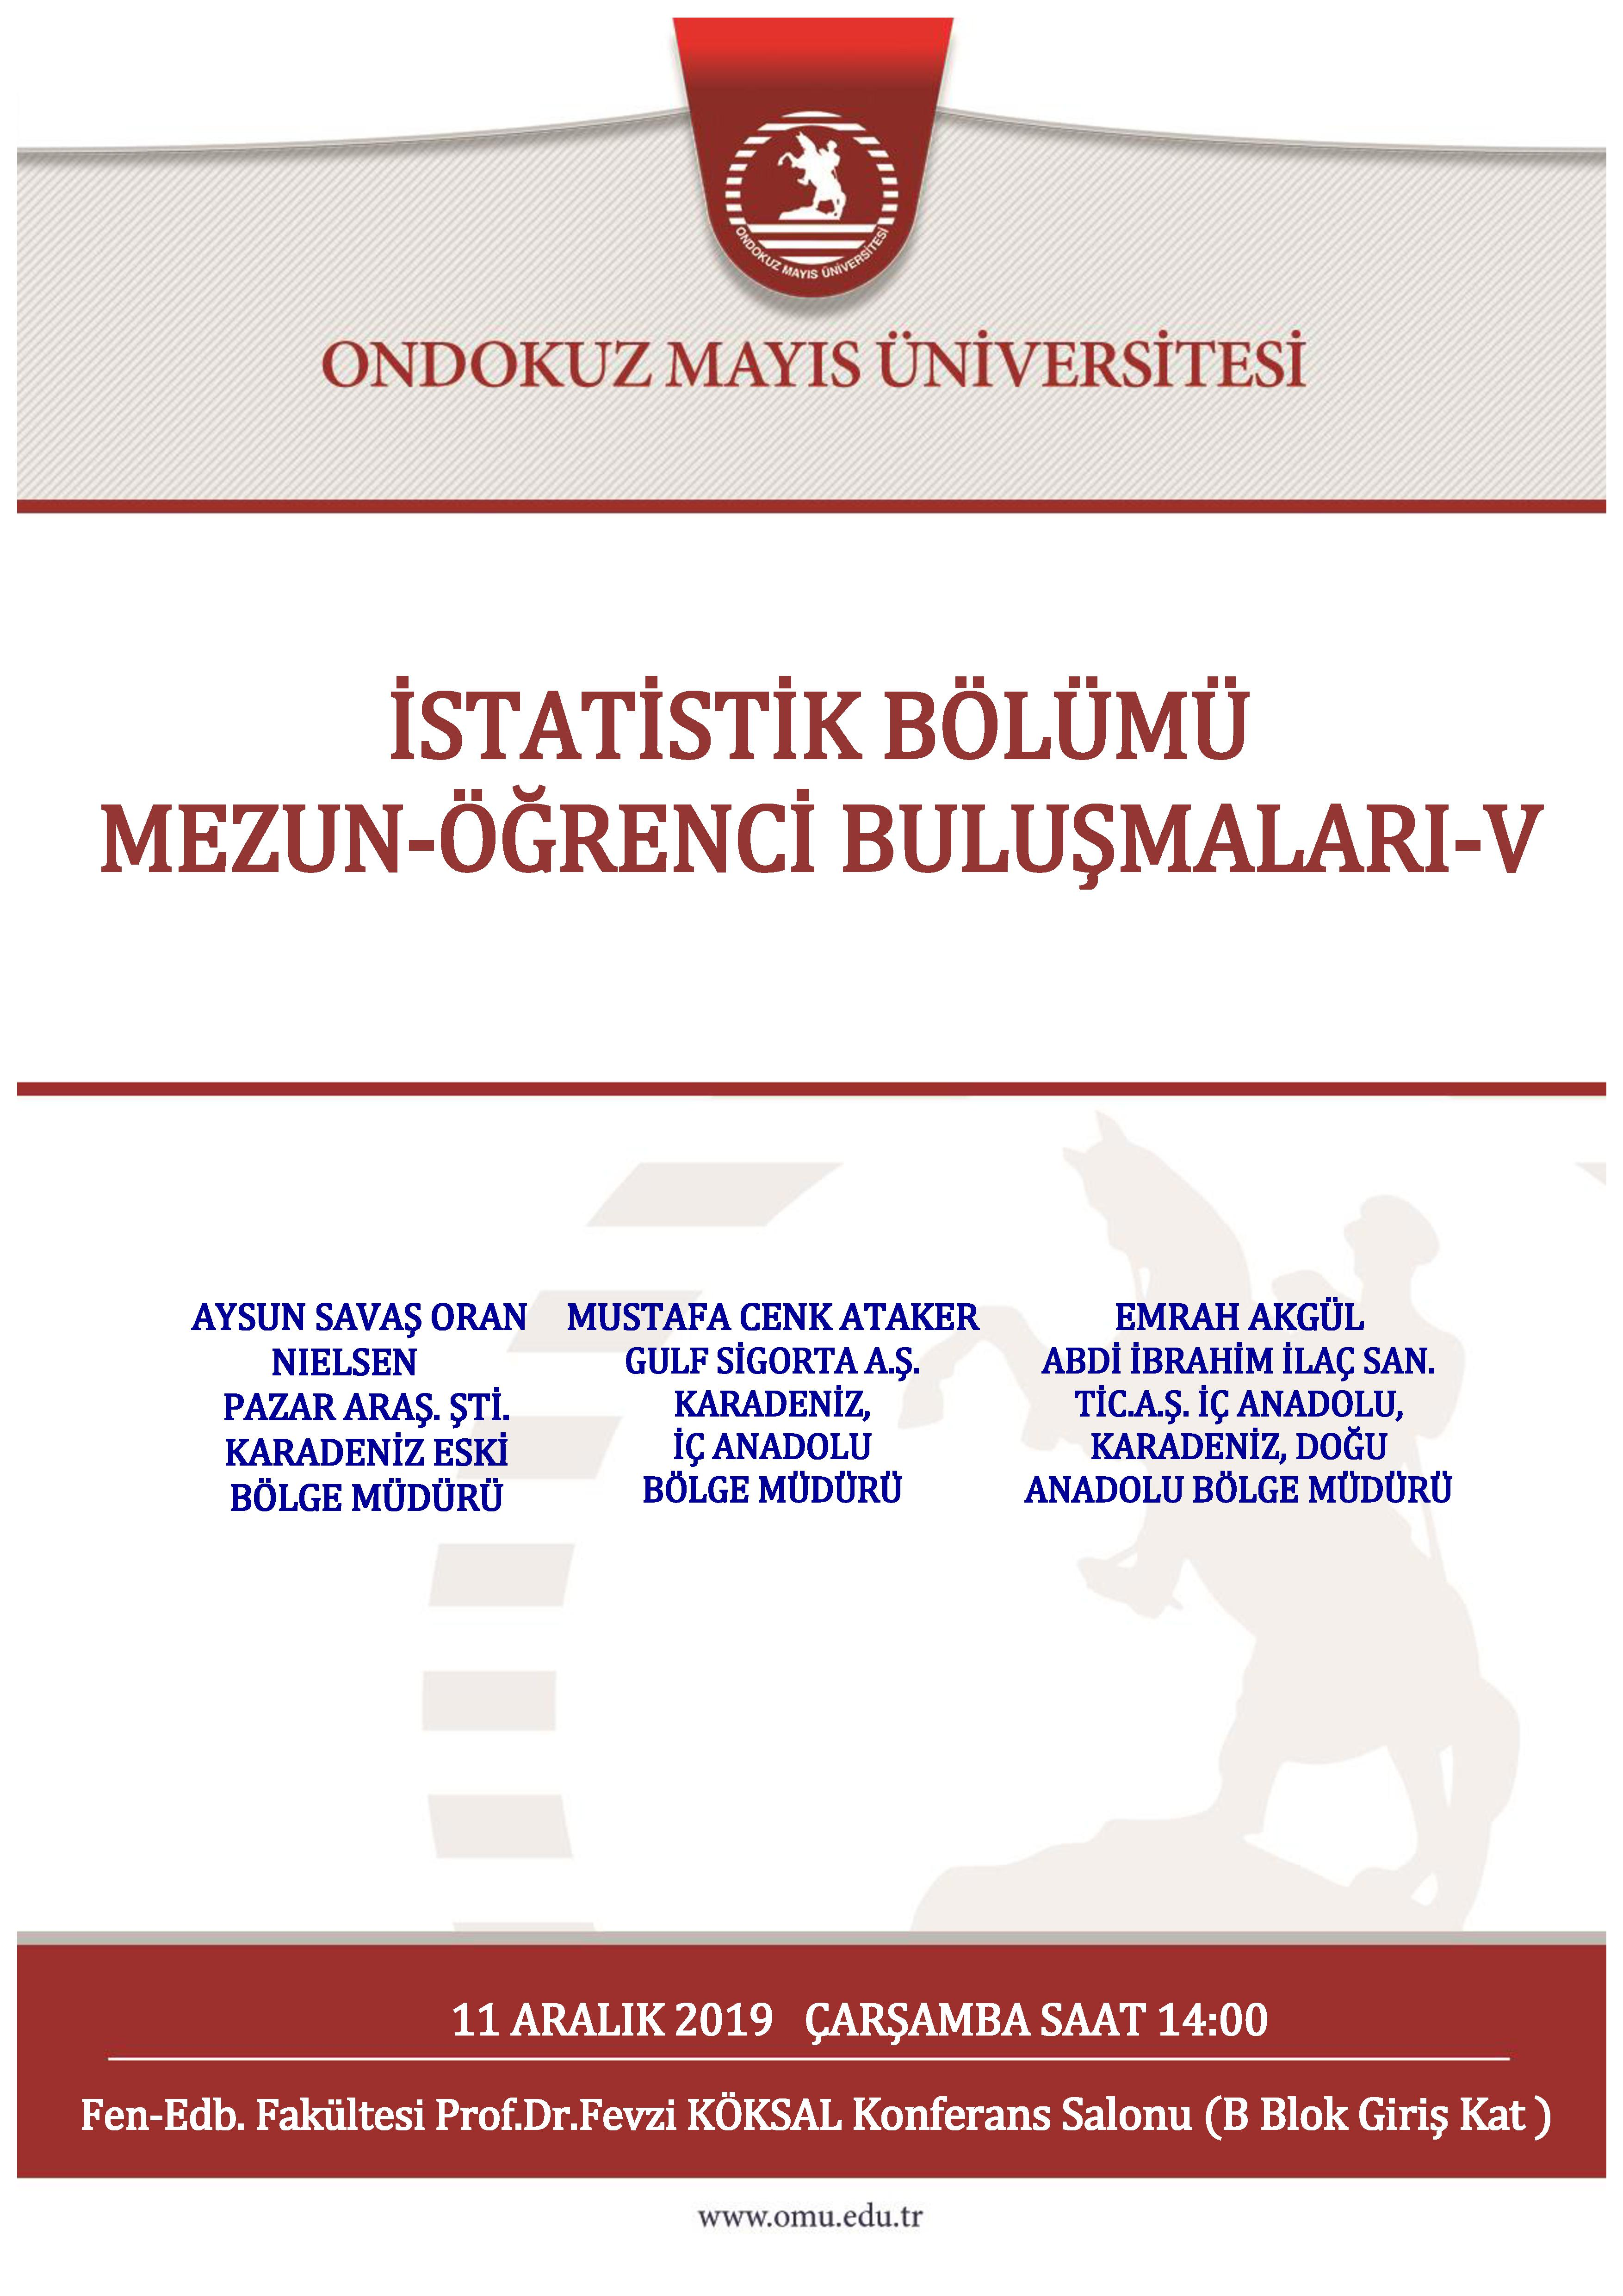 http://www.omu.edu.tr/sites/default/files/mezun_ogrenci_bulusmasi-v_1.jpg